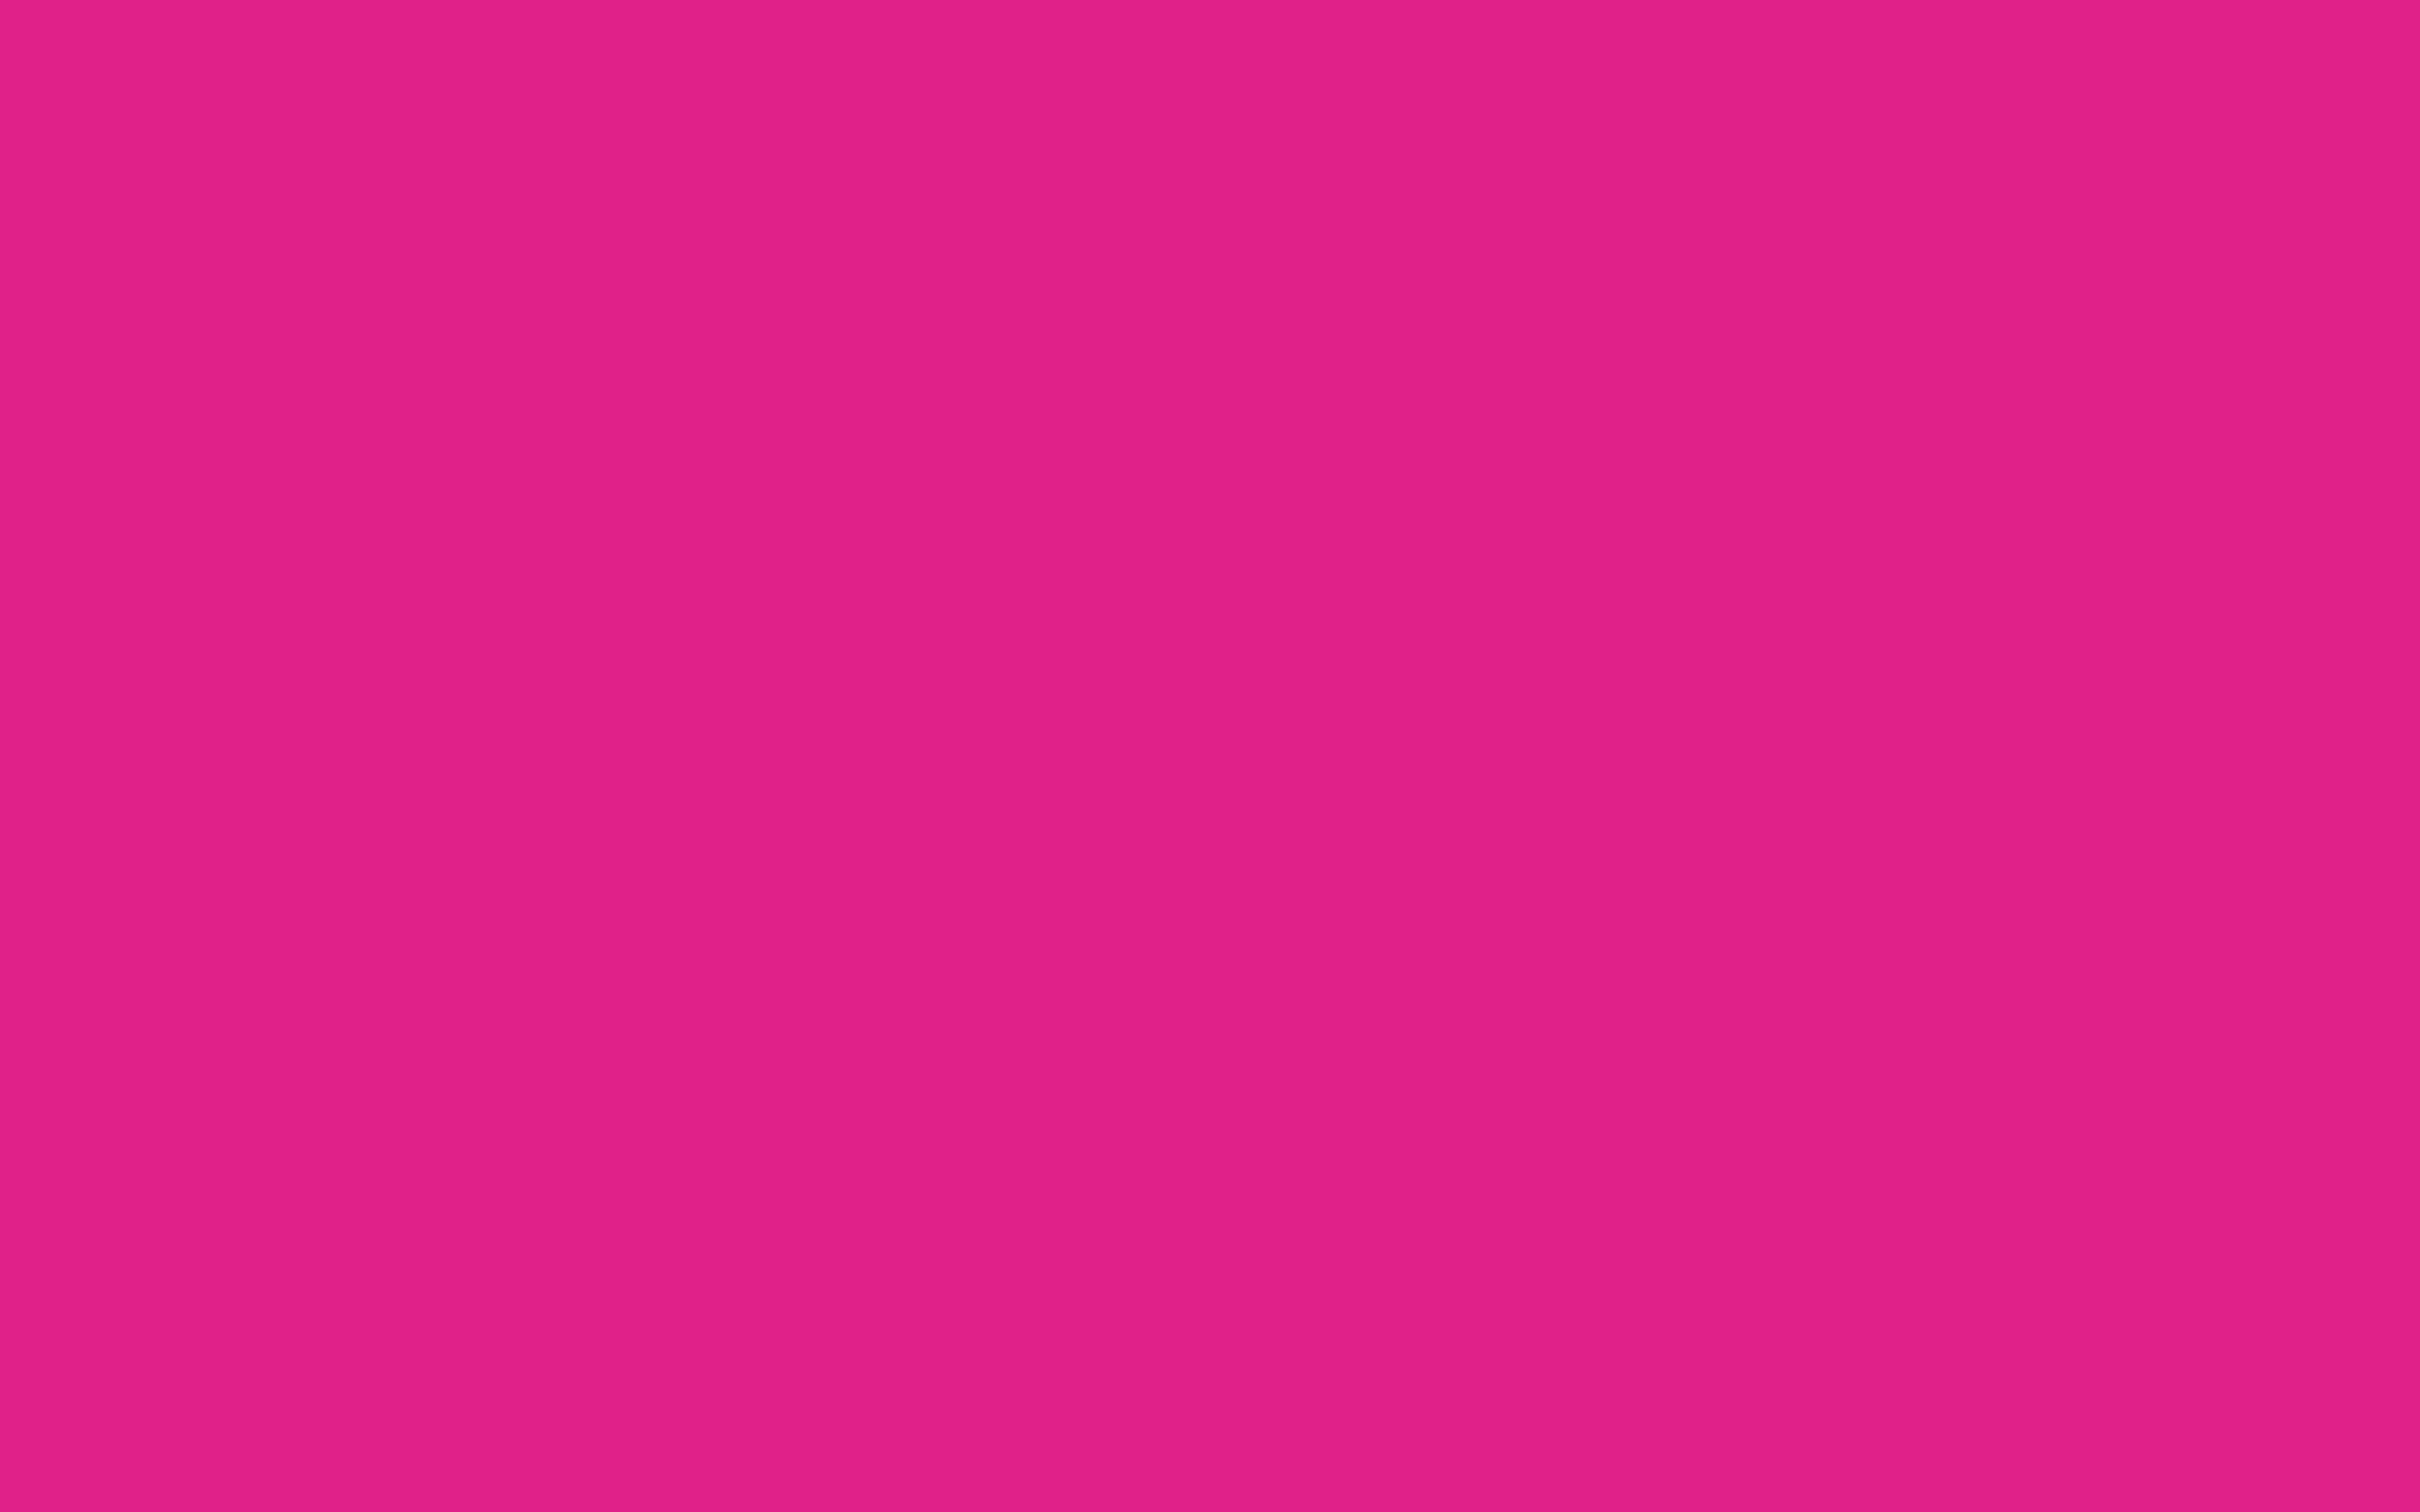 2560x1600 Barbie Pink Solid Color Background